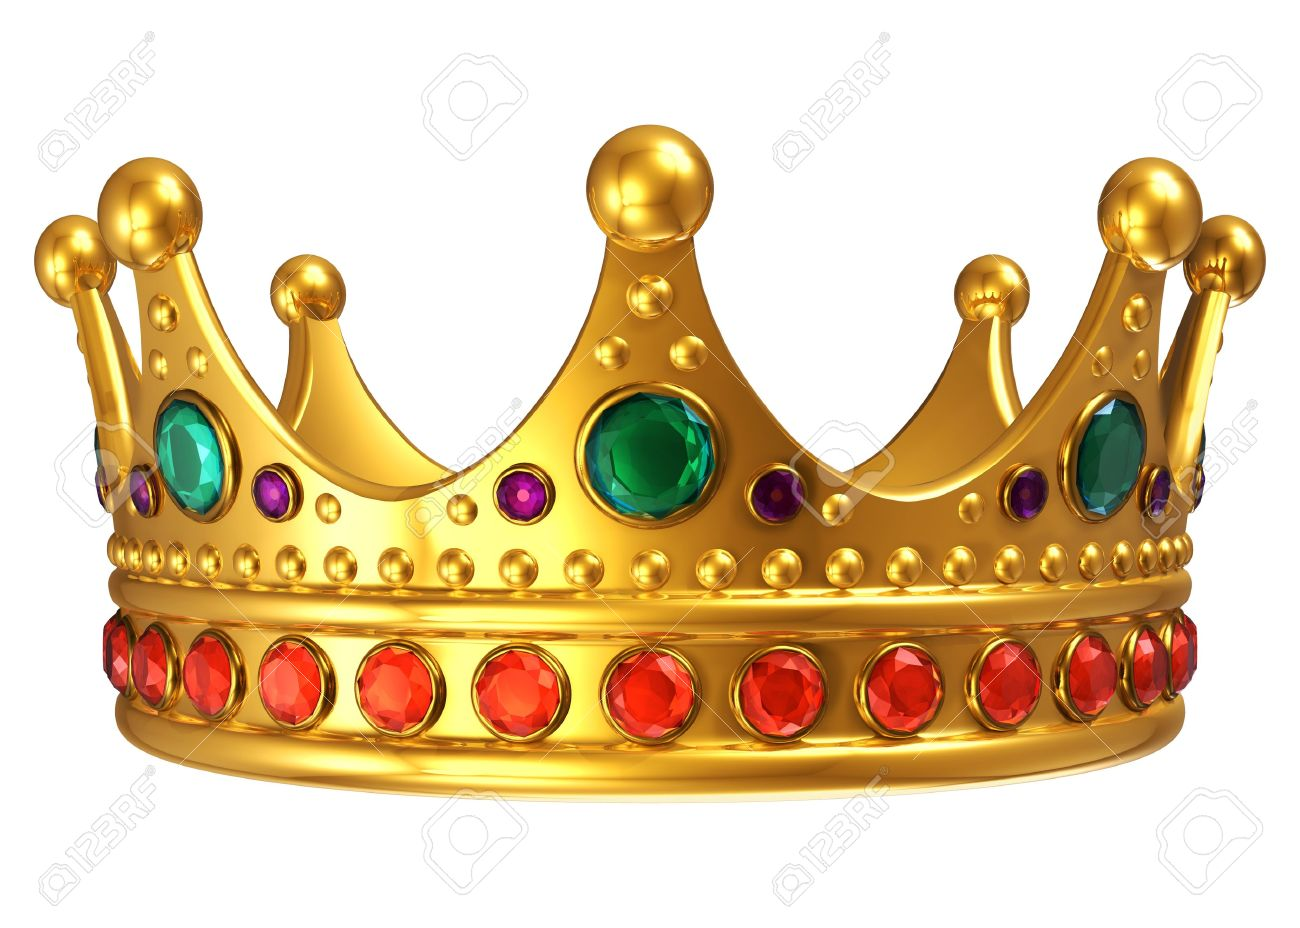 Golden royal crown isolated on white background Stock Photo - 11334121